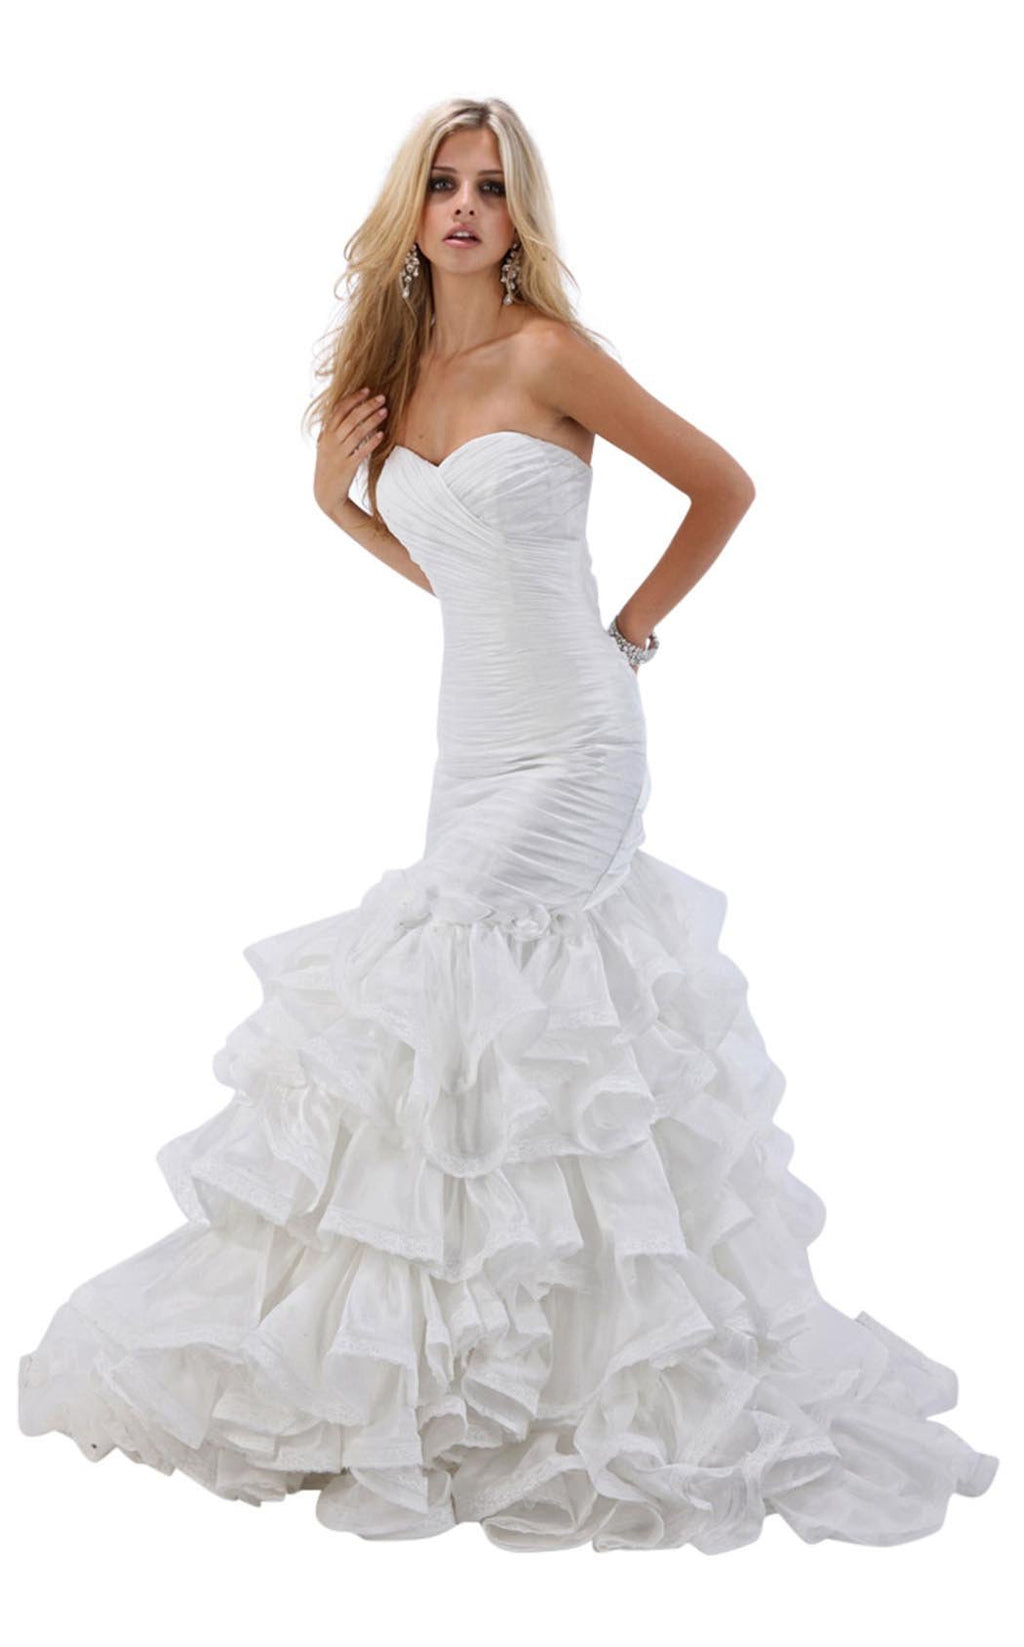 Impression Couture 11027 Diamond White